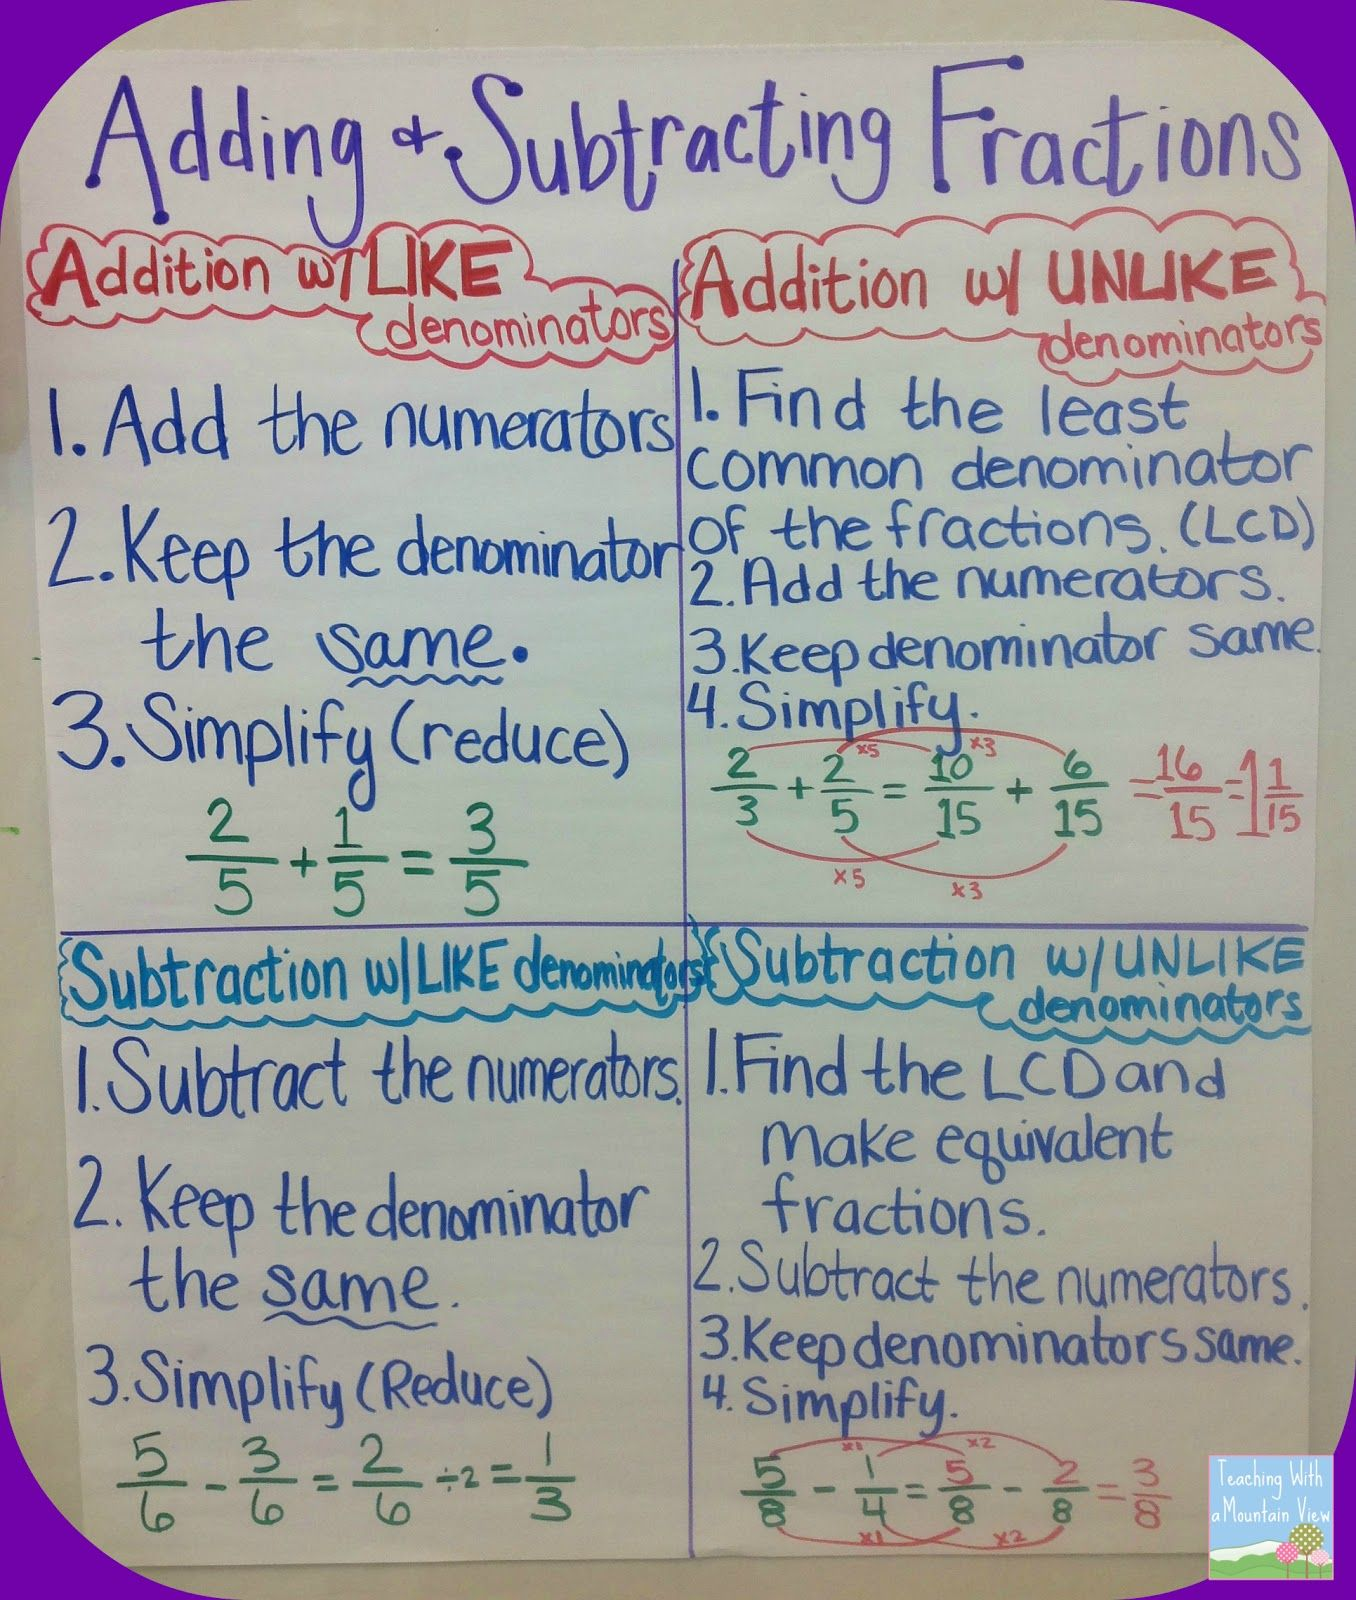 Adding & Subtracting Fractions | FourthGradeFriends.com | Pinterest ...